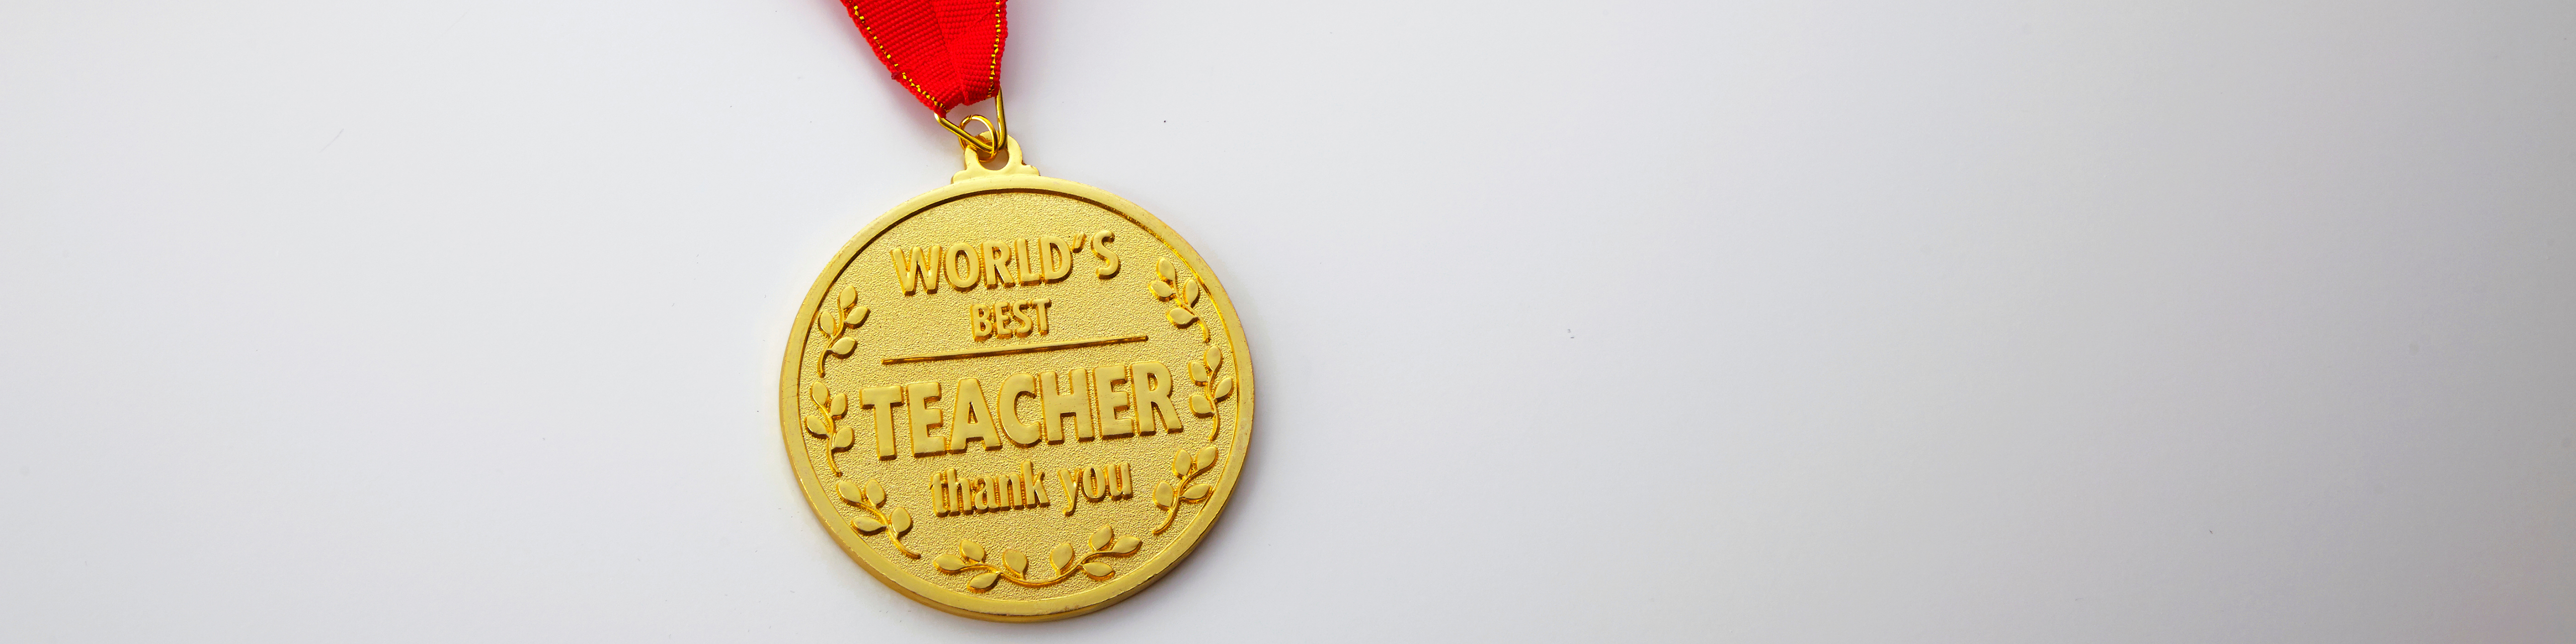 a gold medal at the end of a red ribbon on a white background